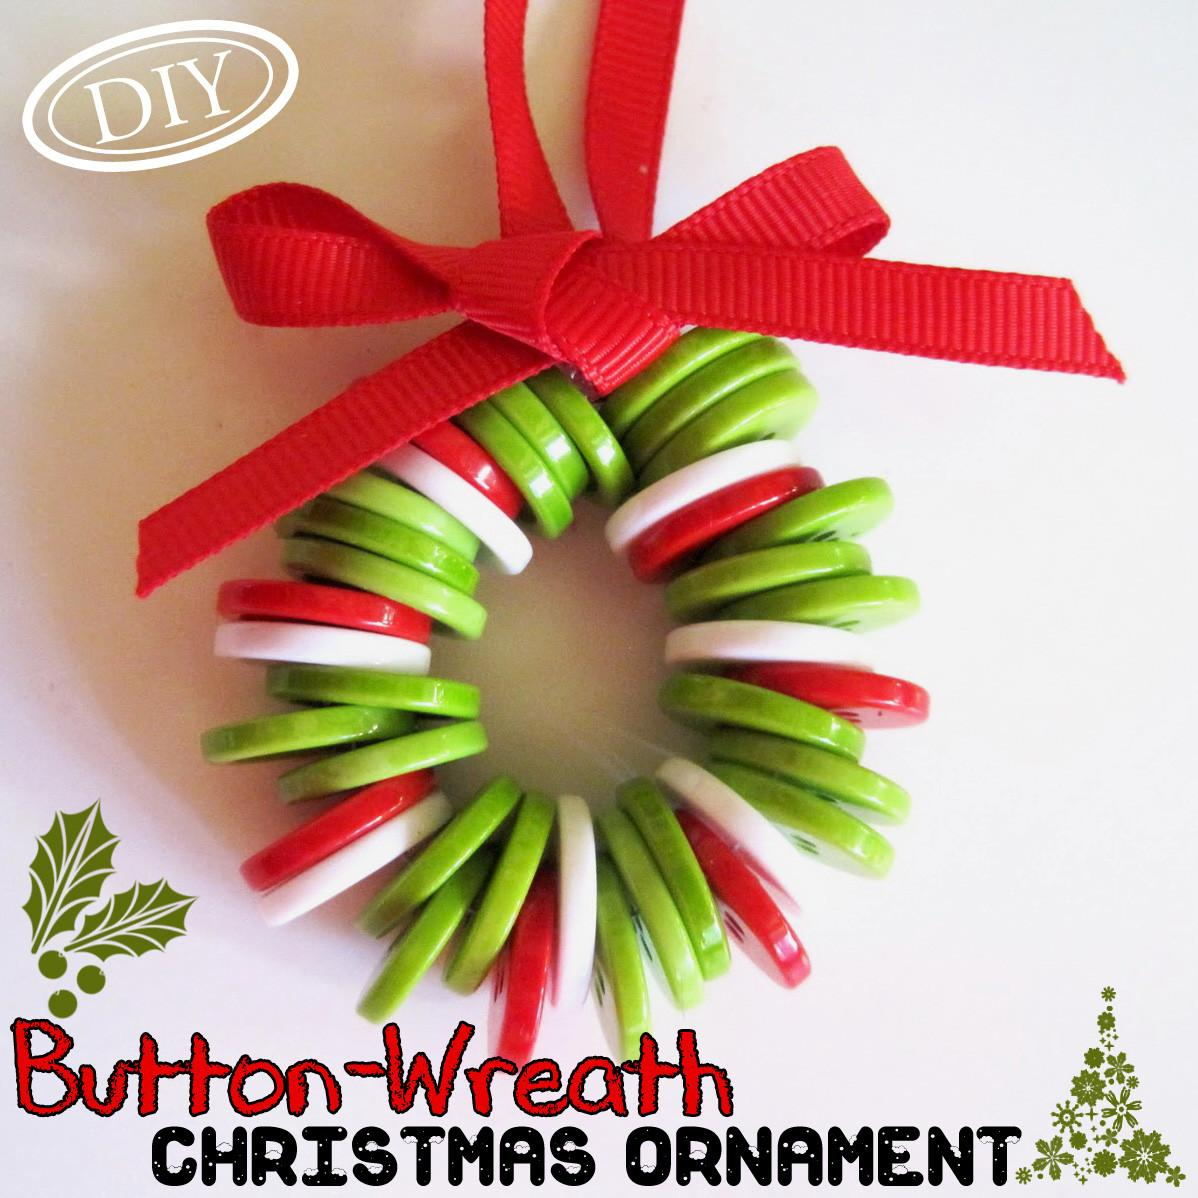 Diy Button Wreath Christmas Ornament Top Easy Craft